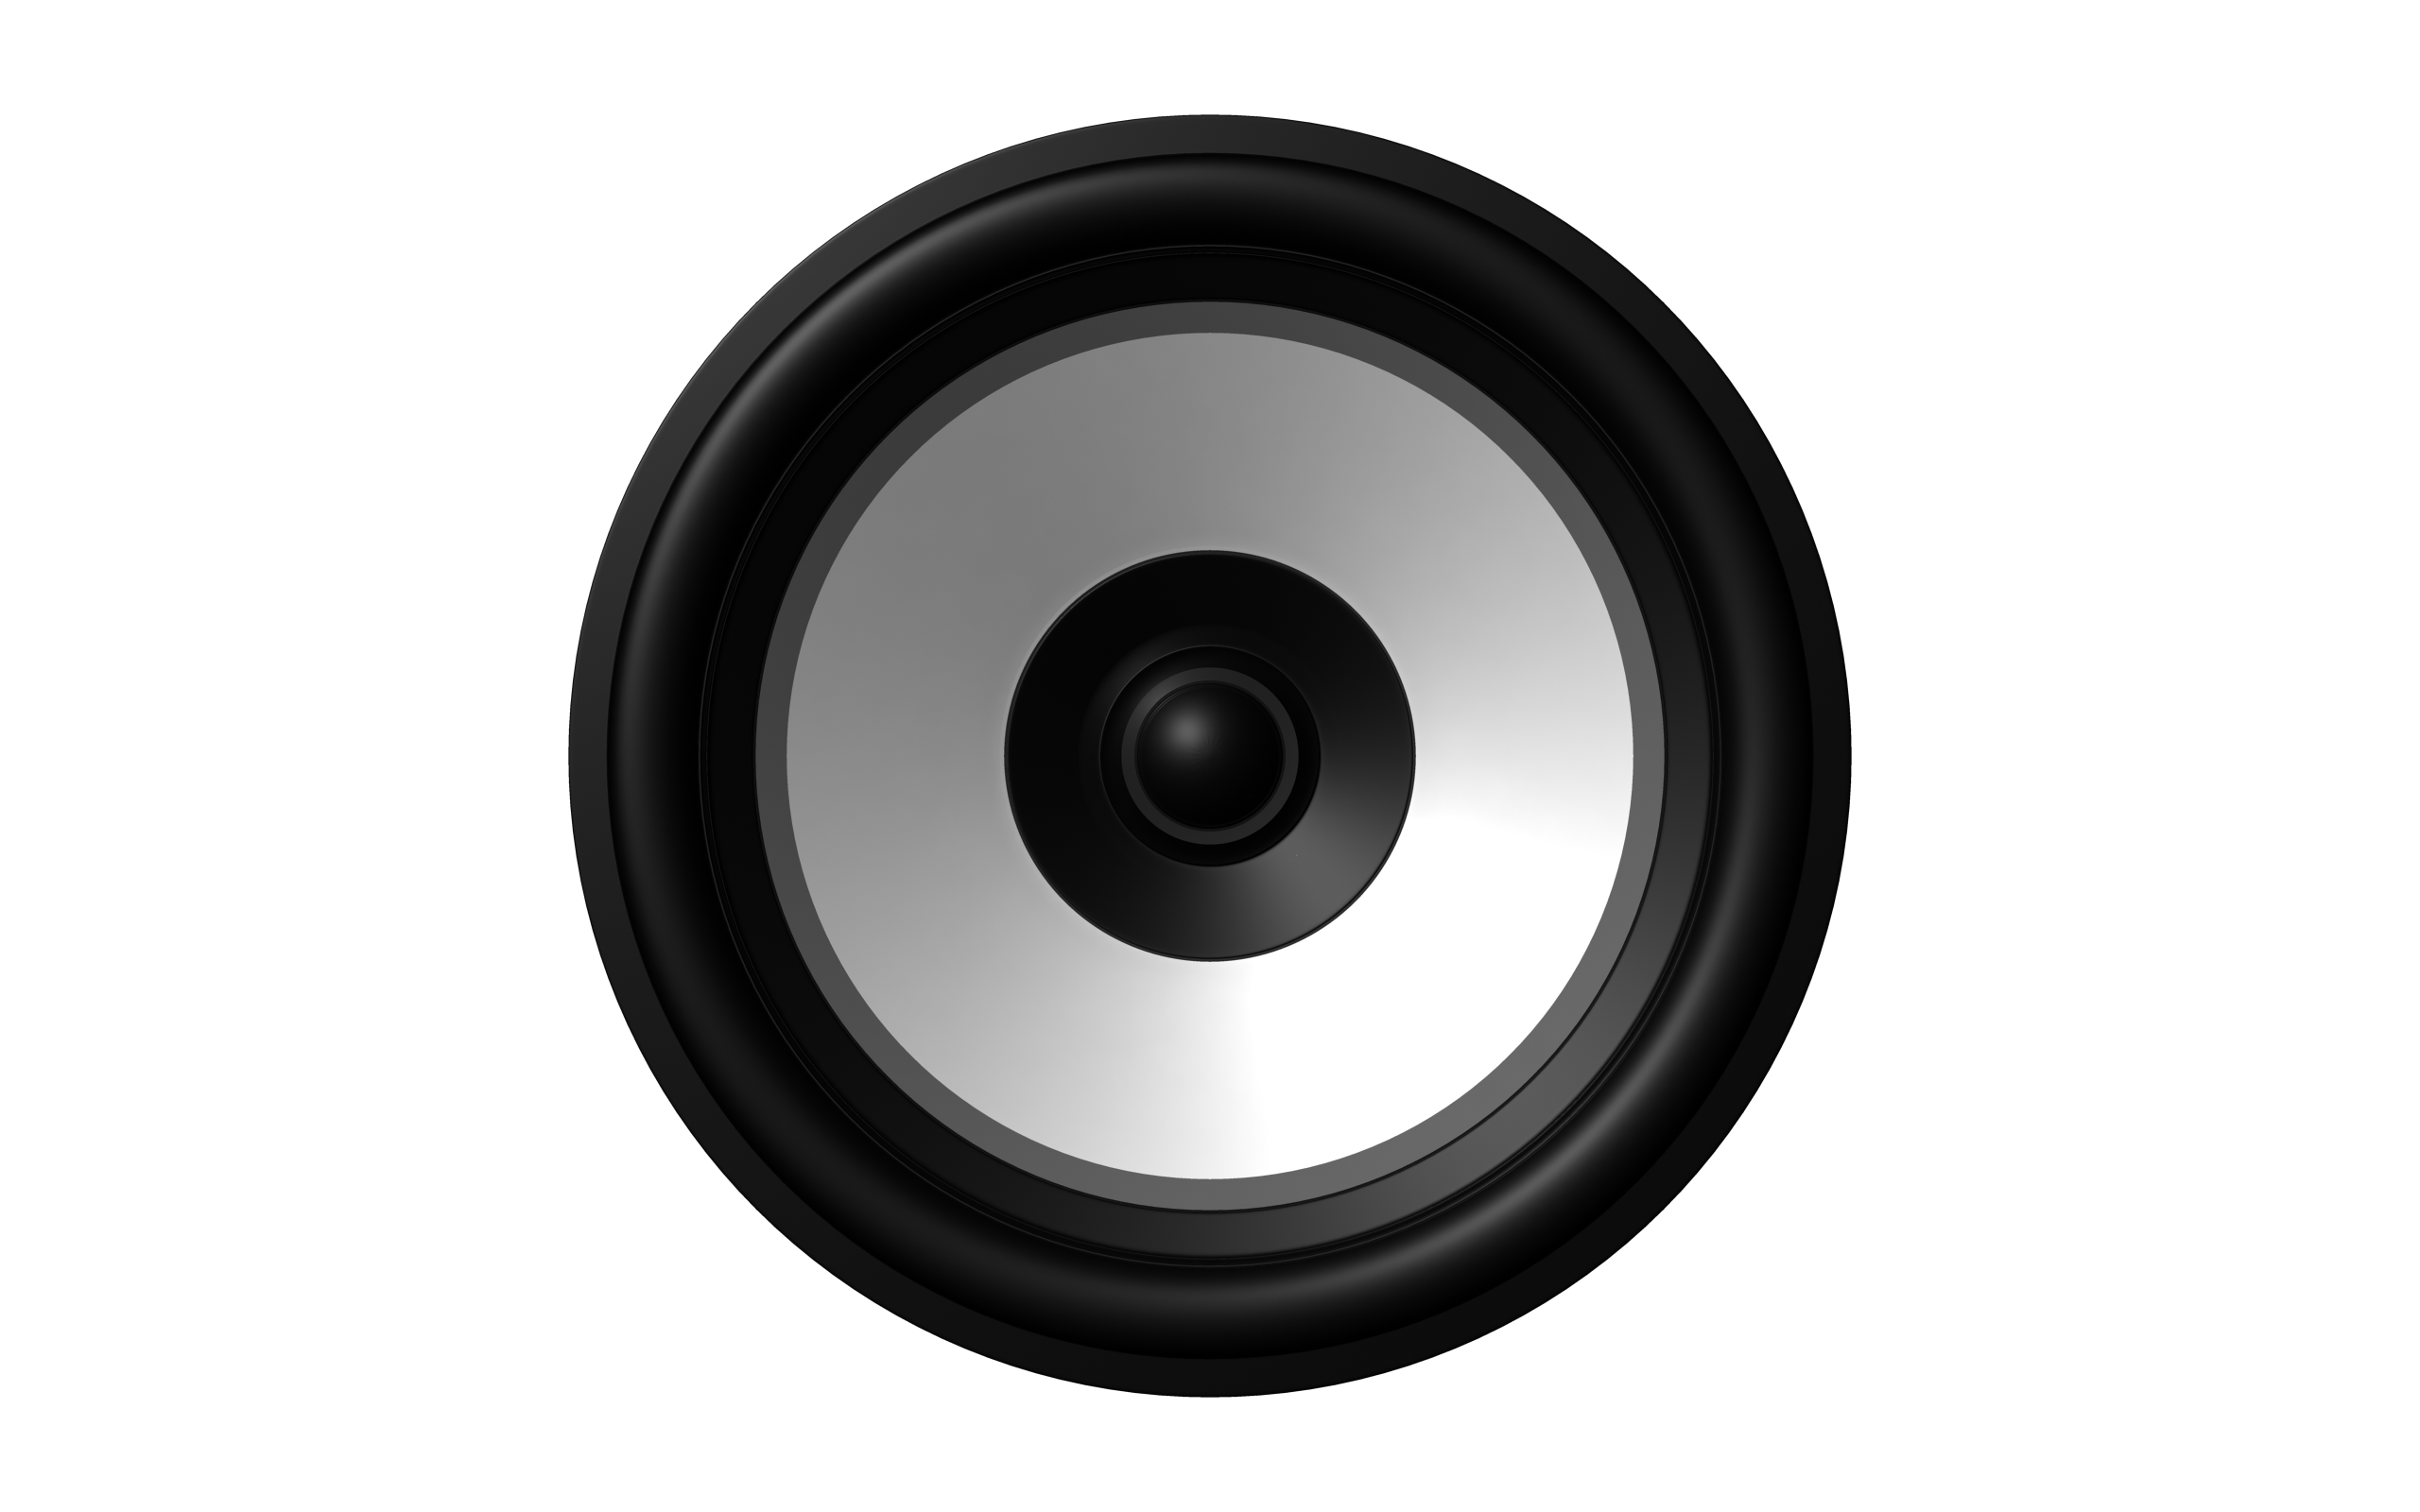 Party speakers png. Audio speaker image purepng